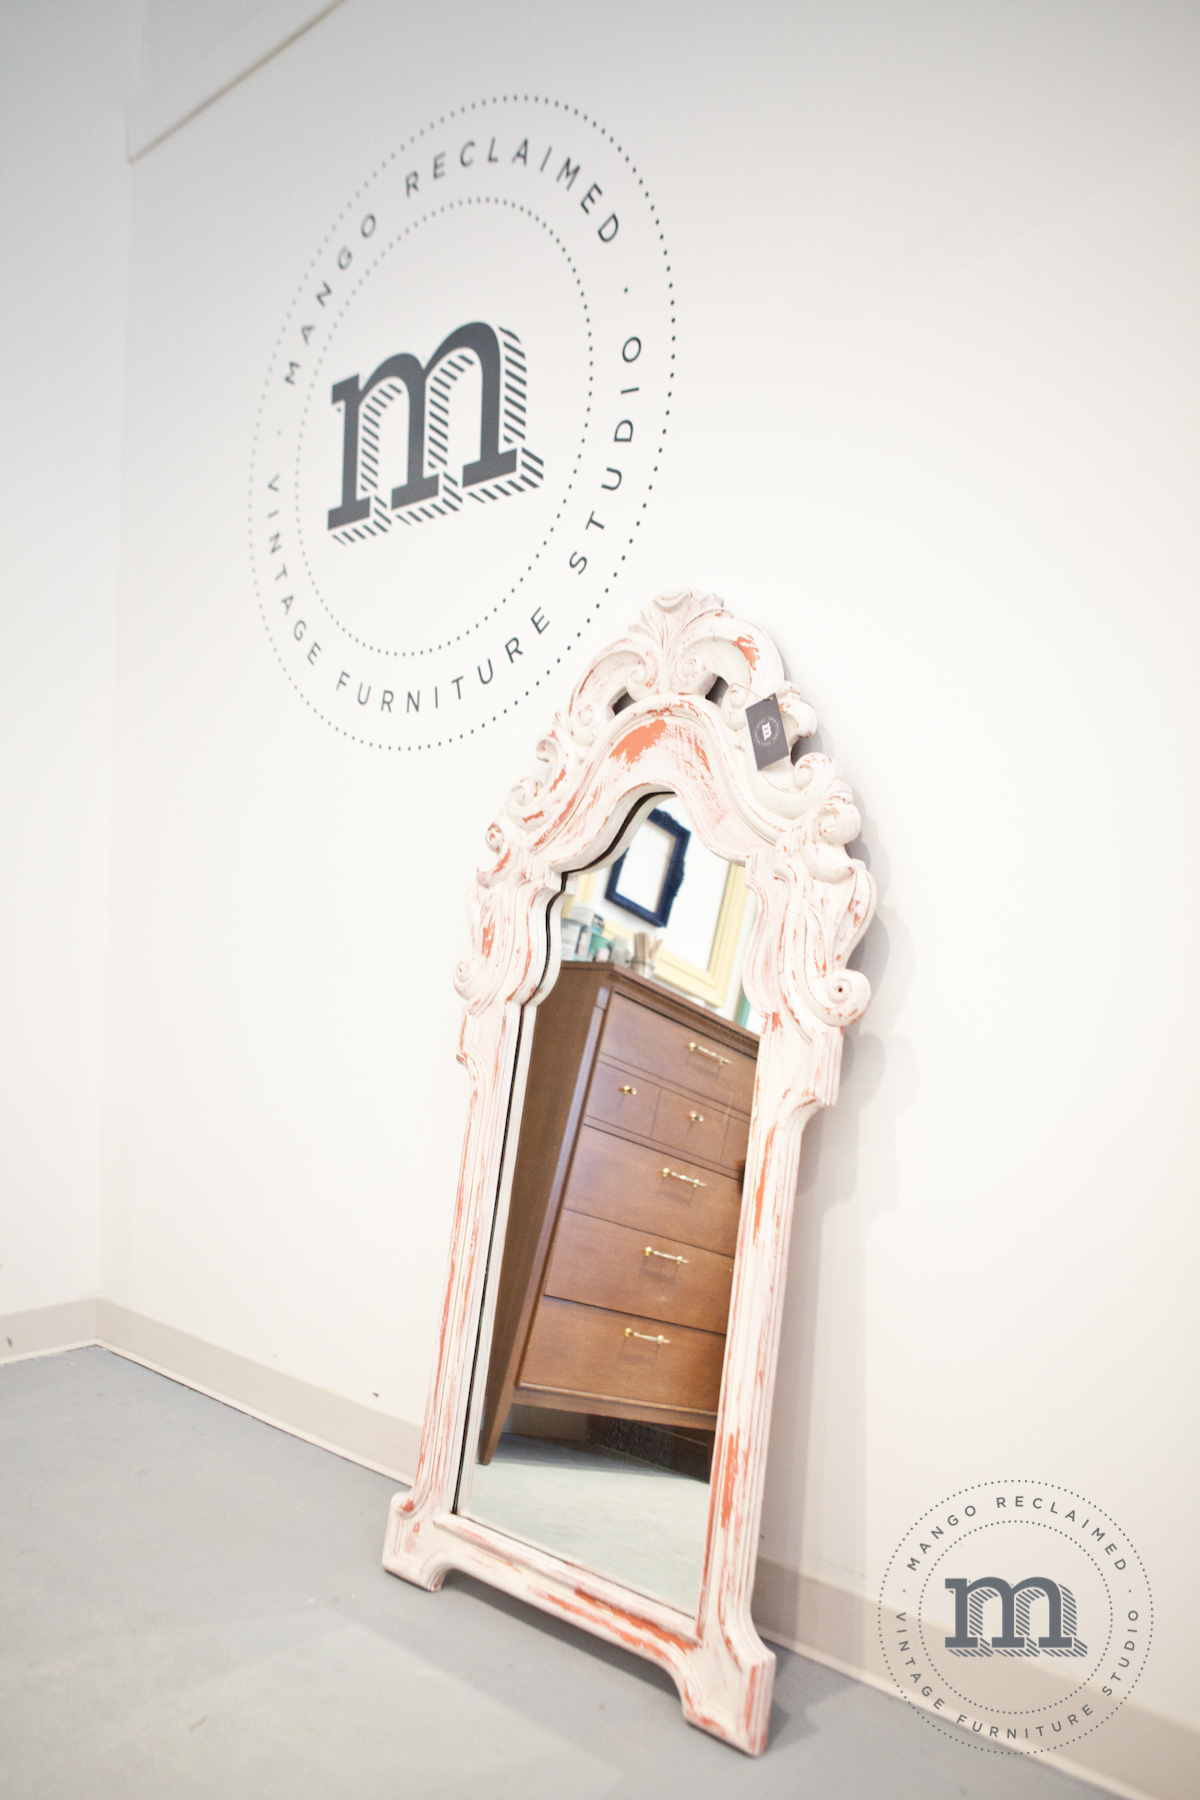 Mirror available at Mango Reclaimed, $150.